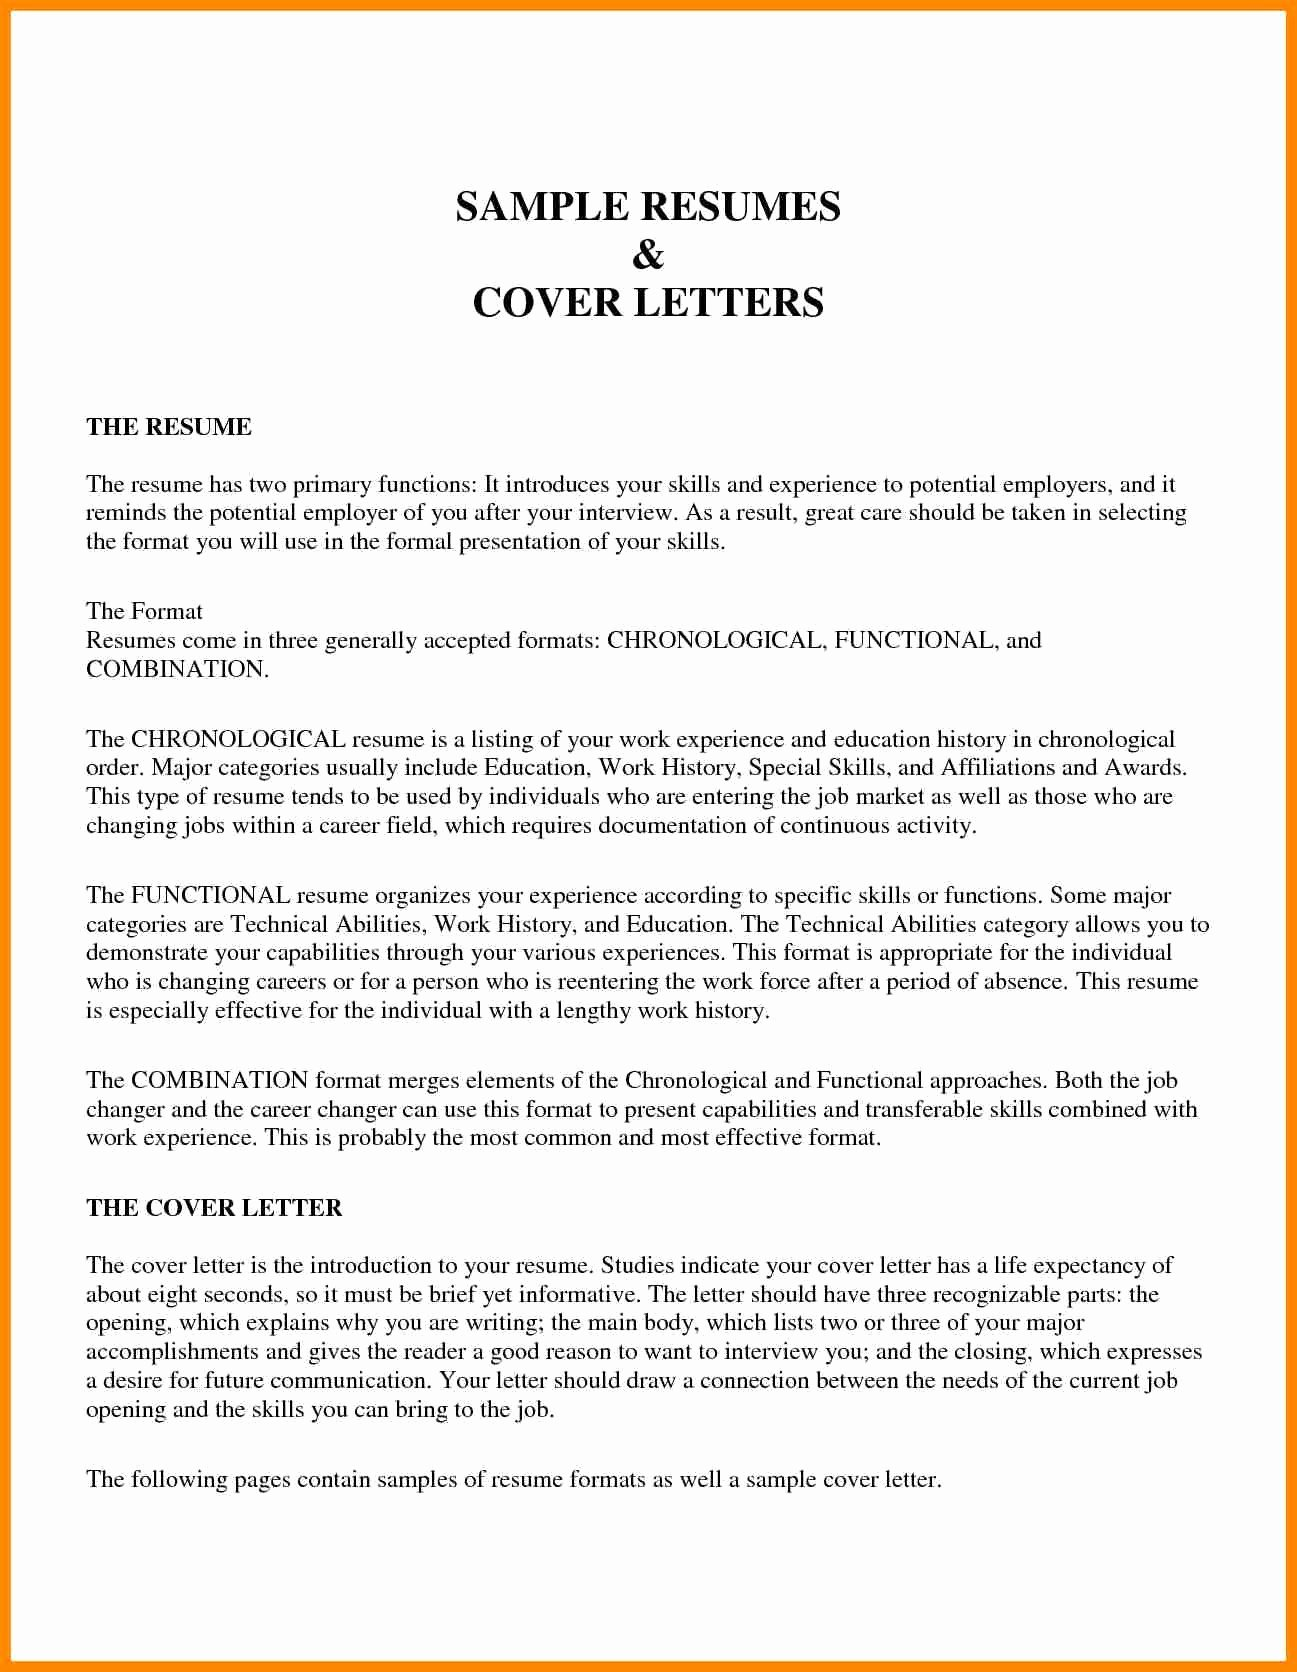 Google Docs Letter Template New Google Letter Template Examples